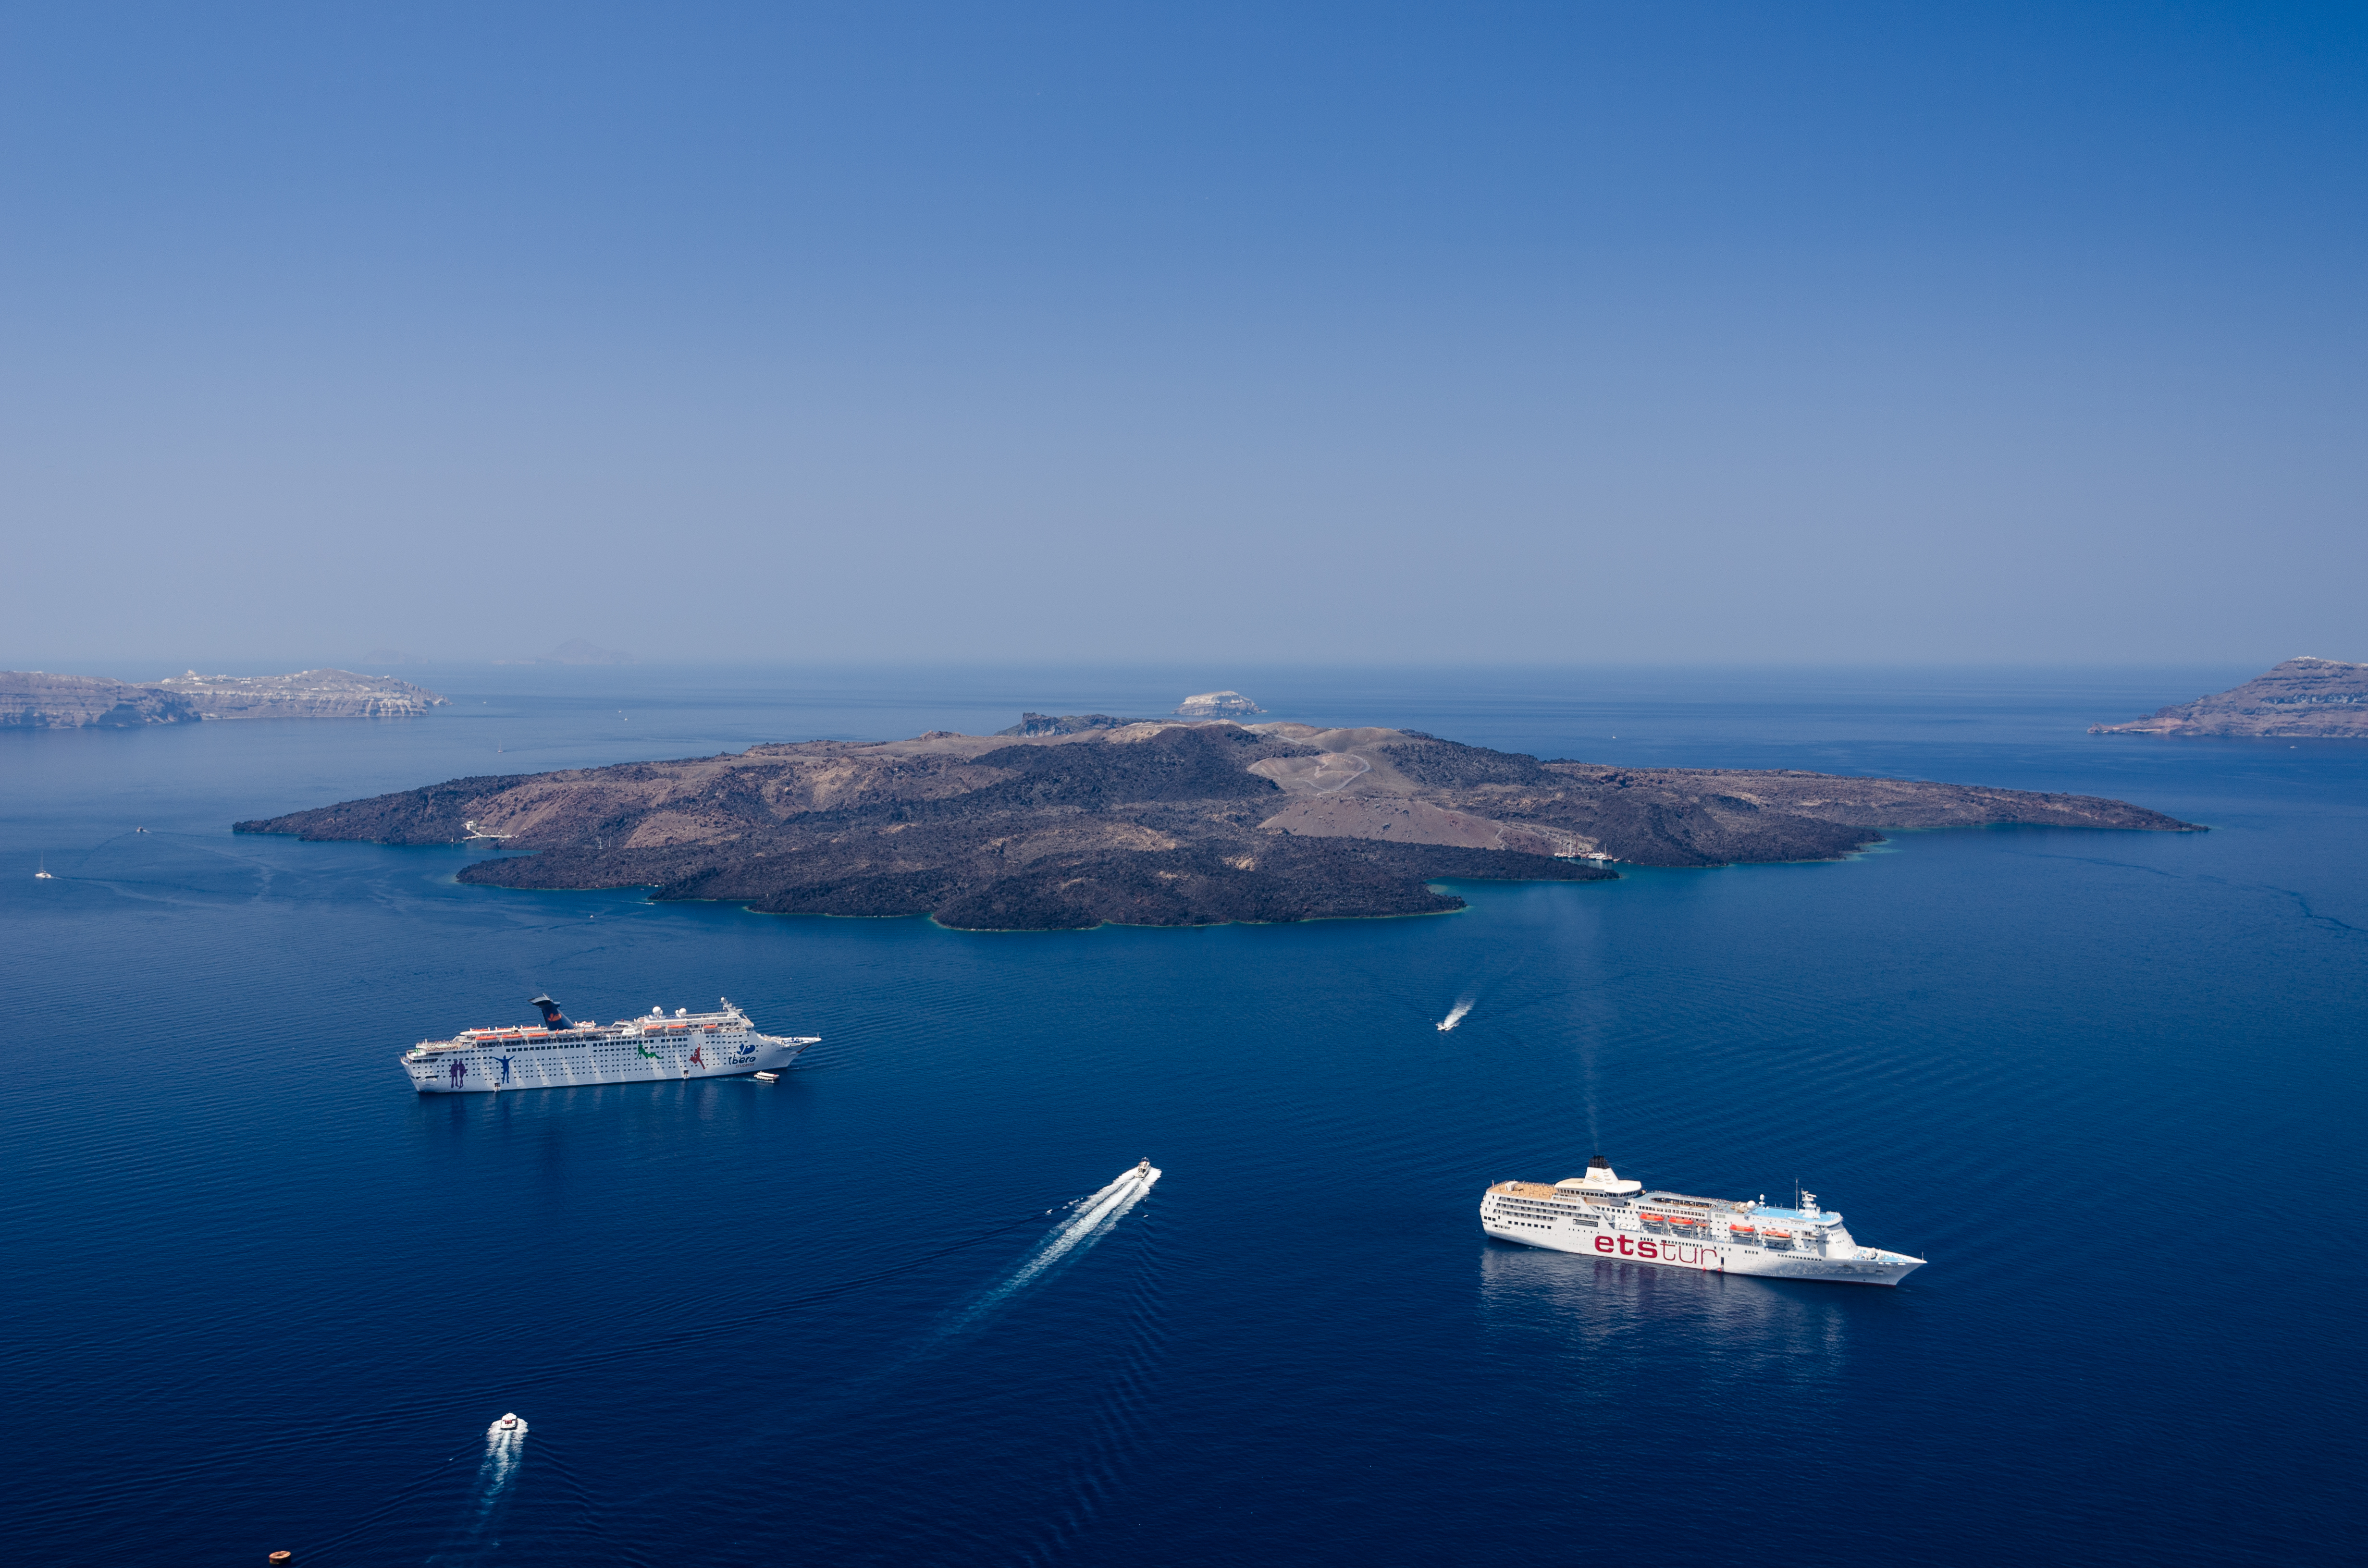 File:Caldera of Santorini - Nea Kameni - seen from Fira ...